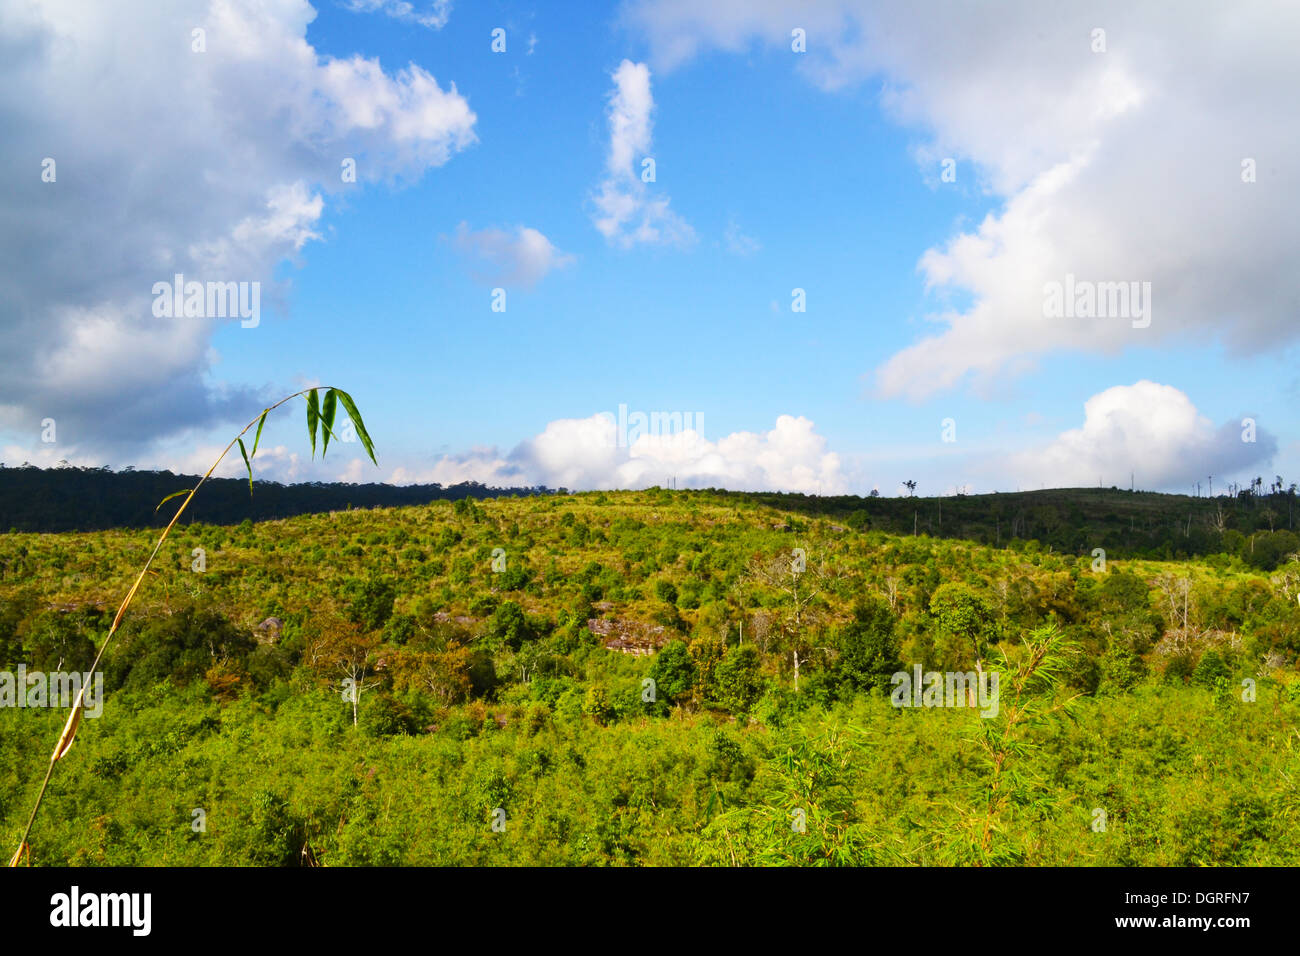 Mountains full of trees with blue sky - Stock Image